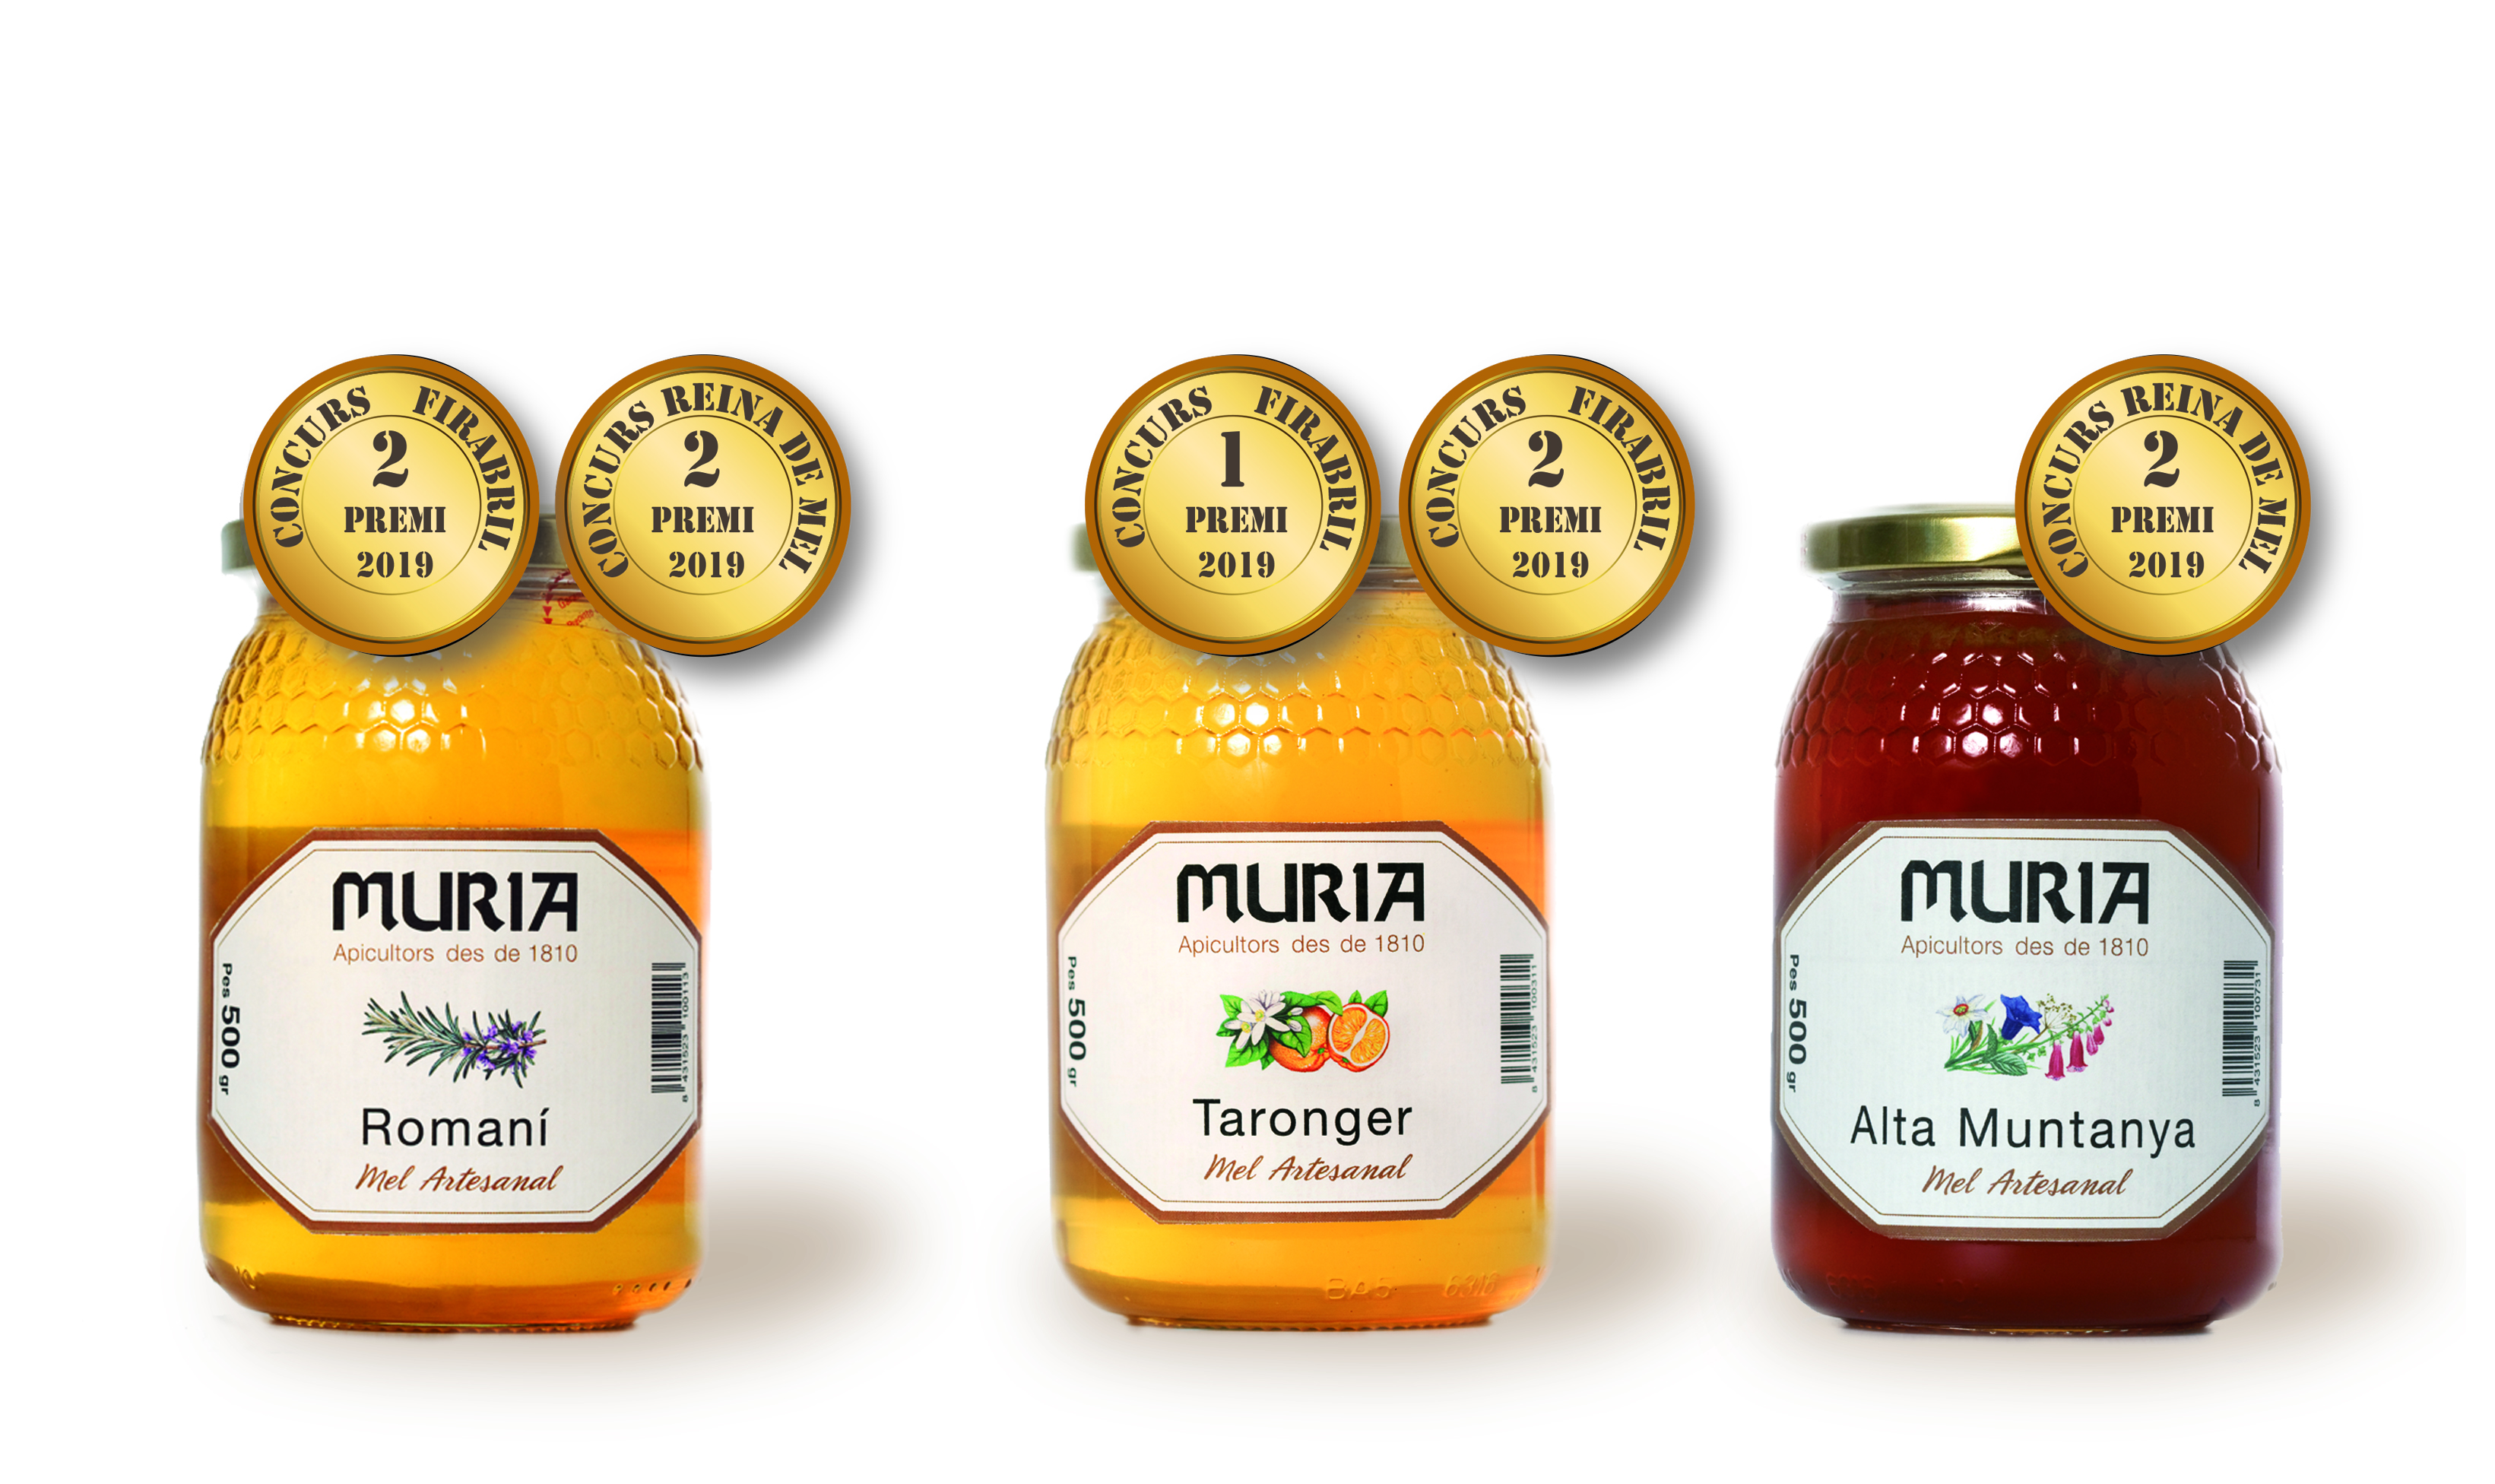 The contest 'Queen of honeys' at Fira Q Balaguer awards two varieties of Muria Honey